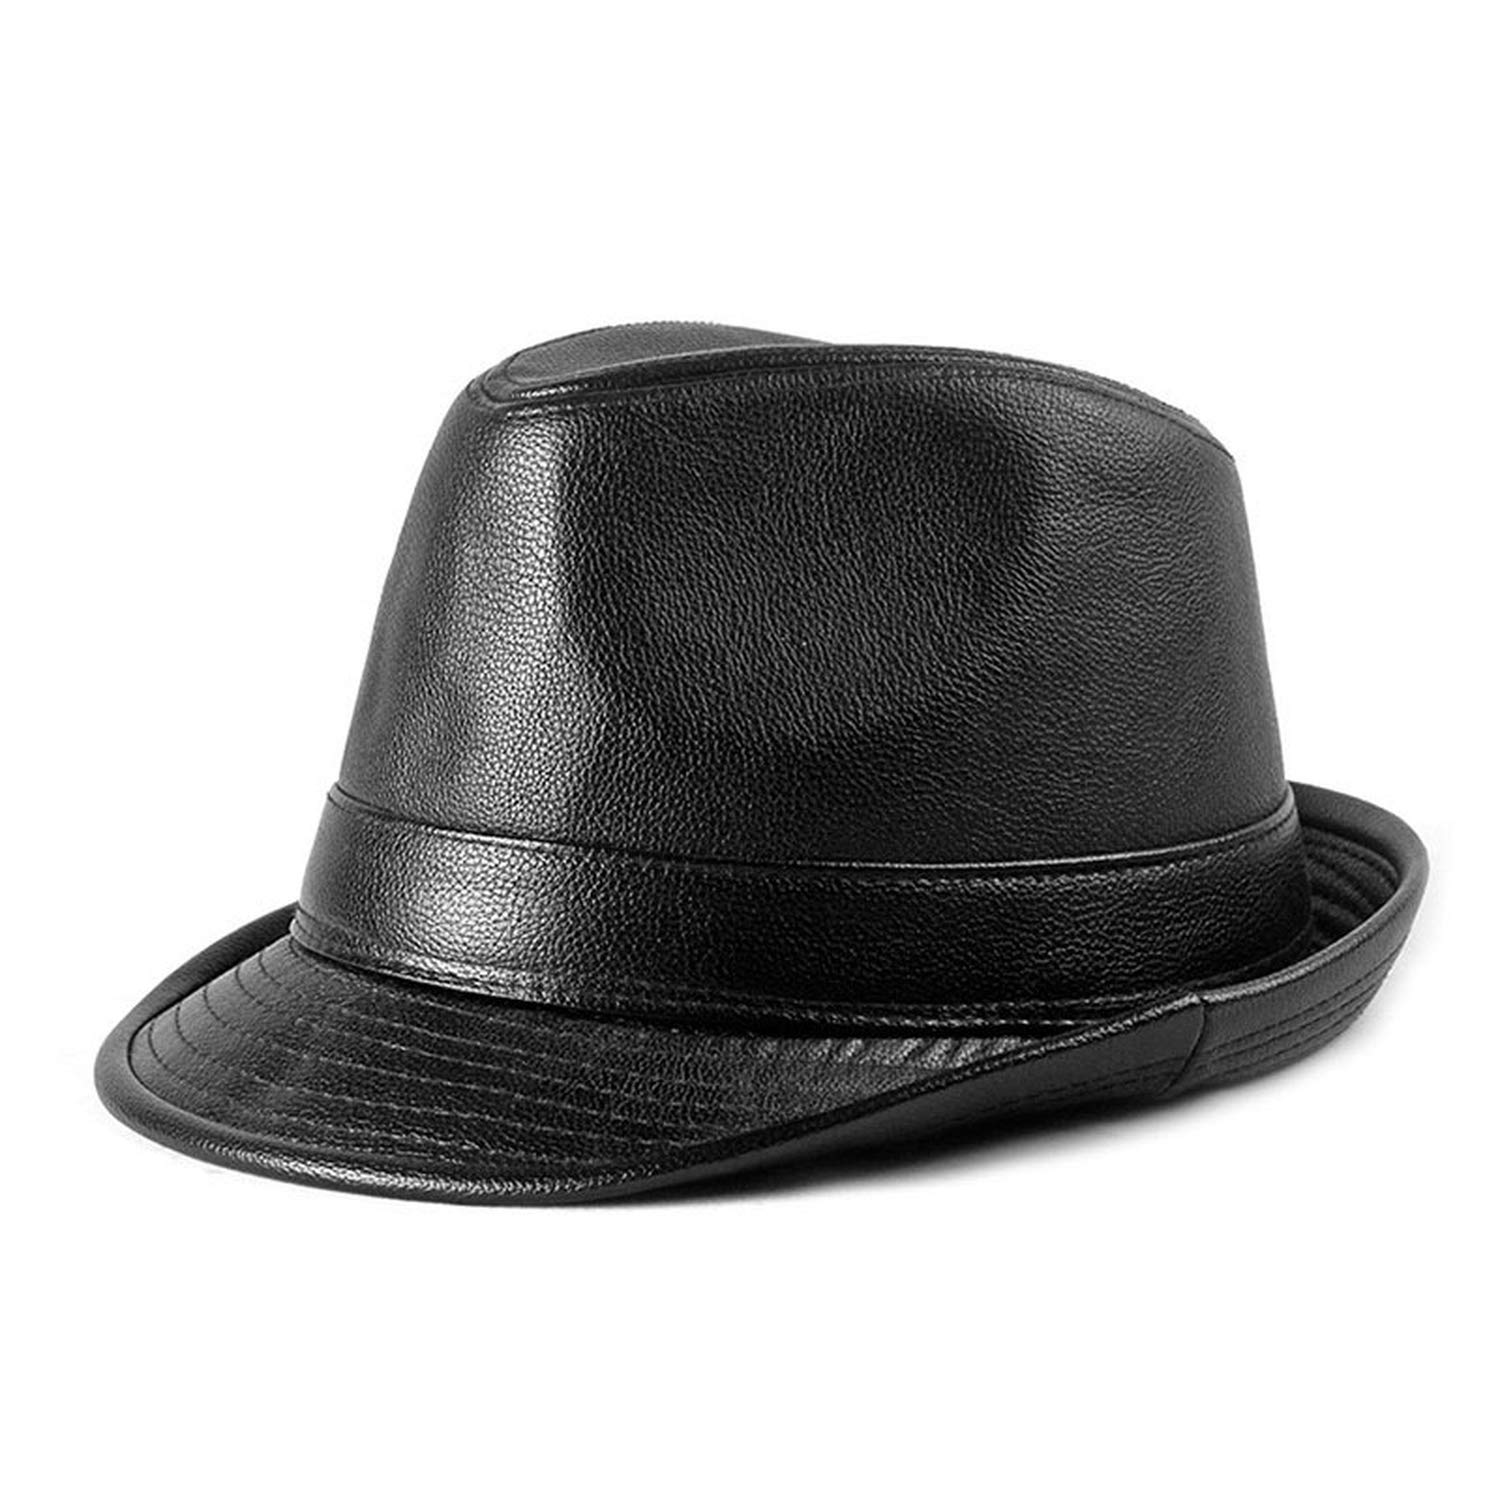 7aaacc4478d 2019 Winter PU Leather Fedoras Hats for Men Women Fedora Top Hat Panama  Jazz Cap Gorros Black at Amazon Men s Clothing store